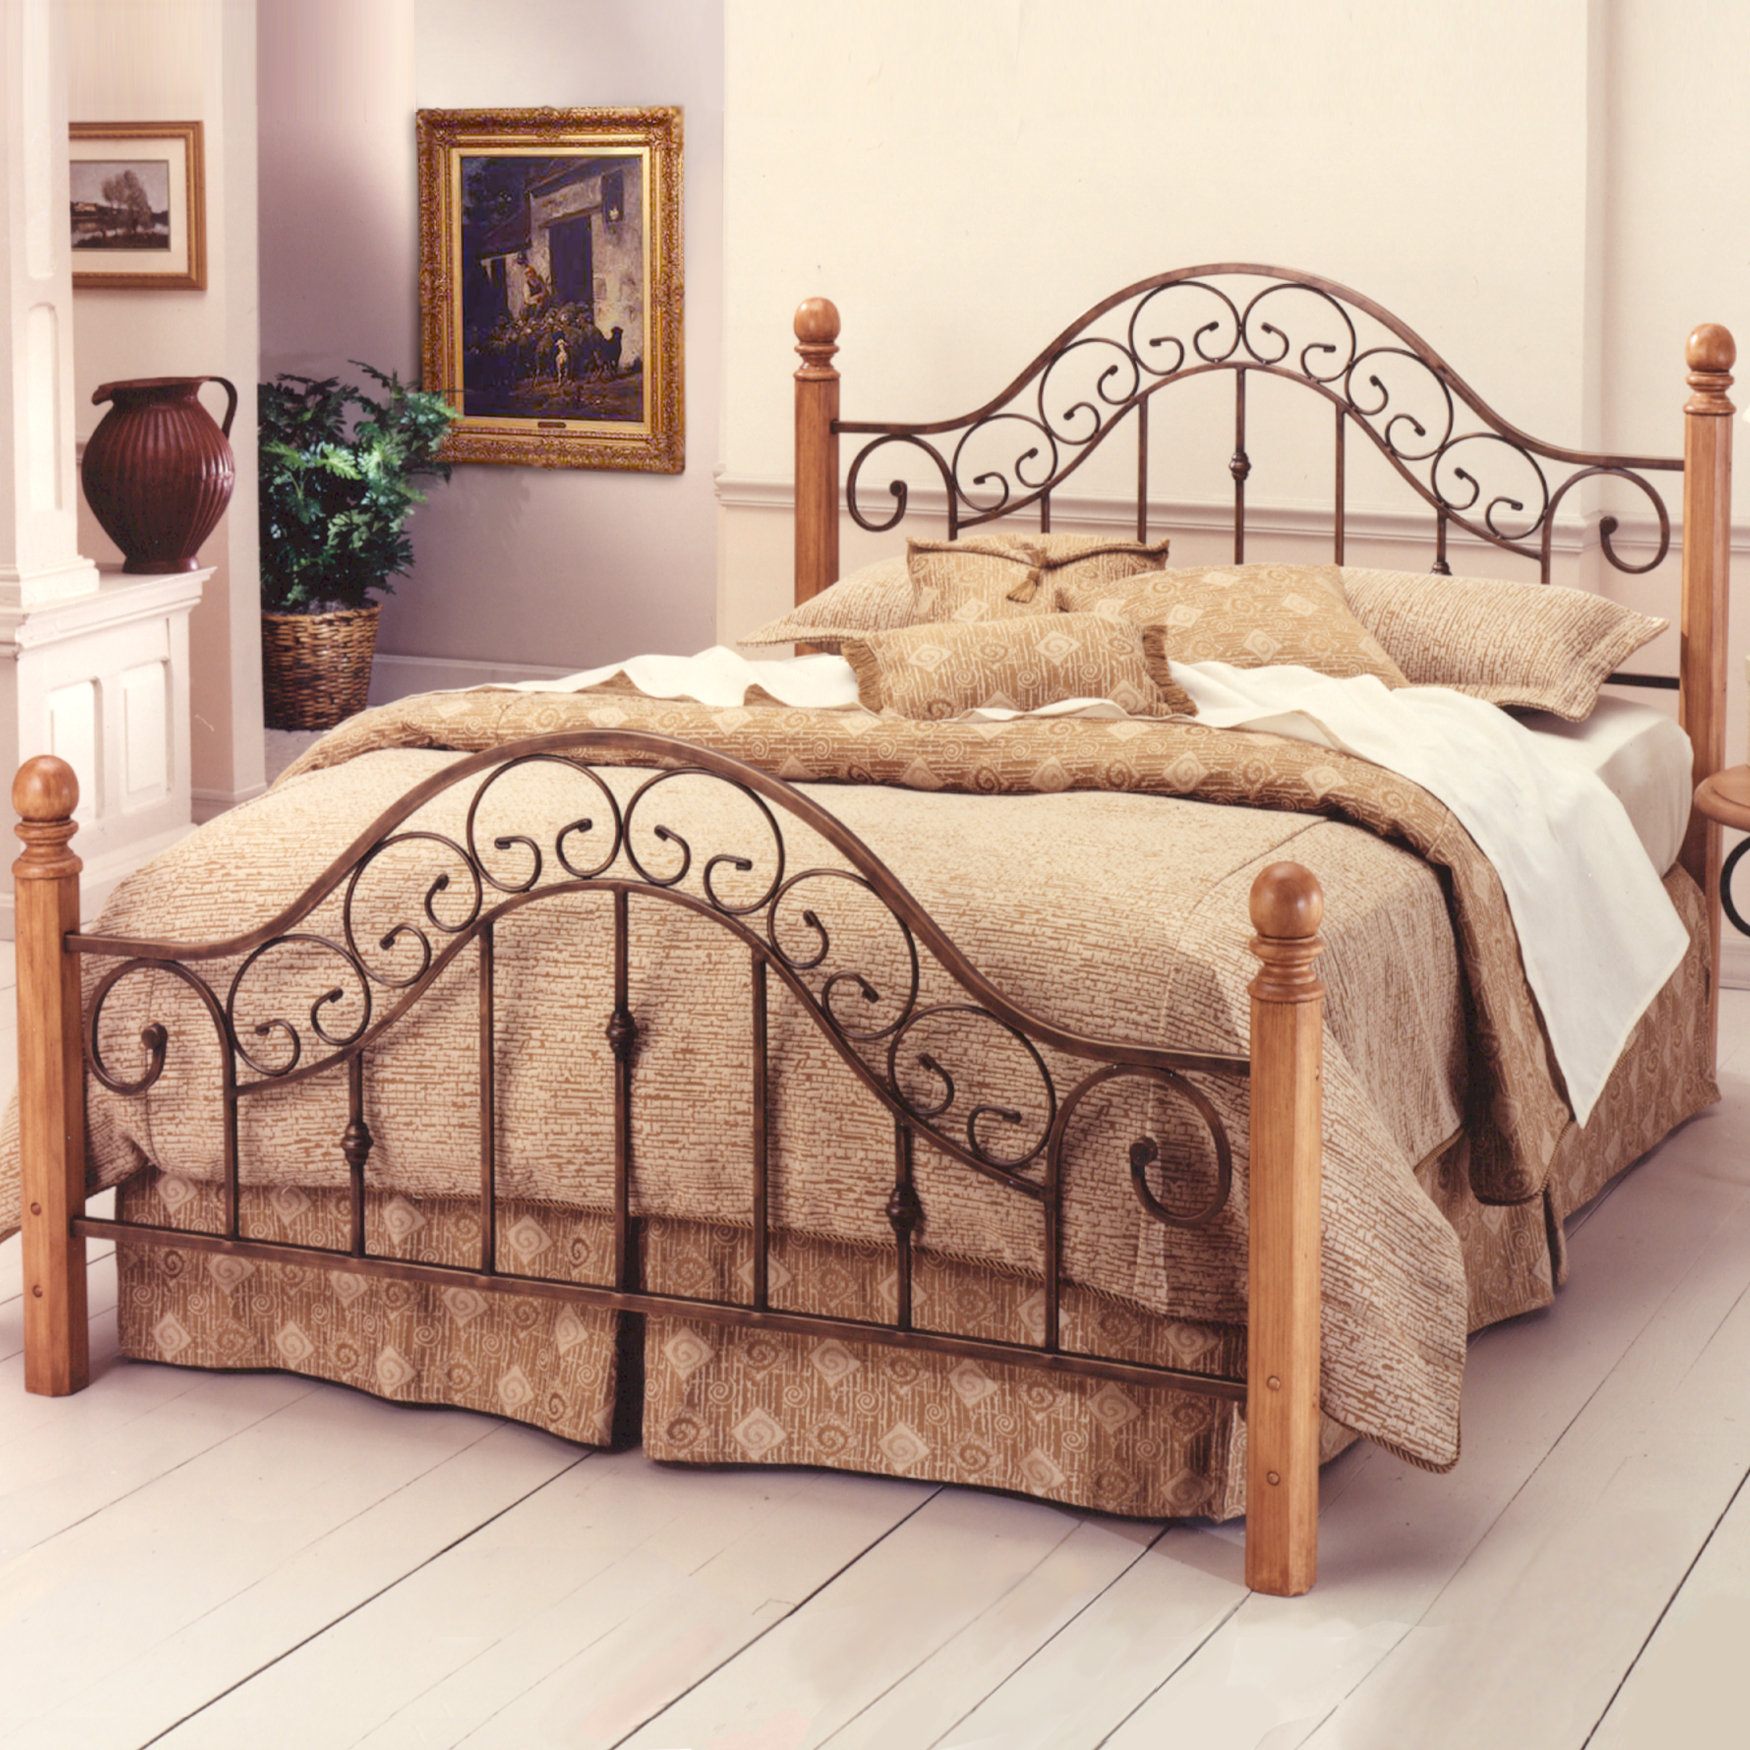 Queen Bed with Bed Frame, 83½'Lx62½'Wx52¼'H, BROWN COPPER